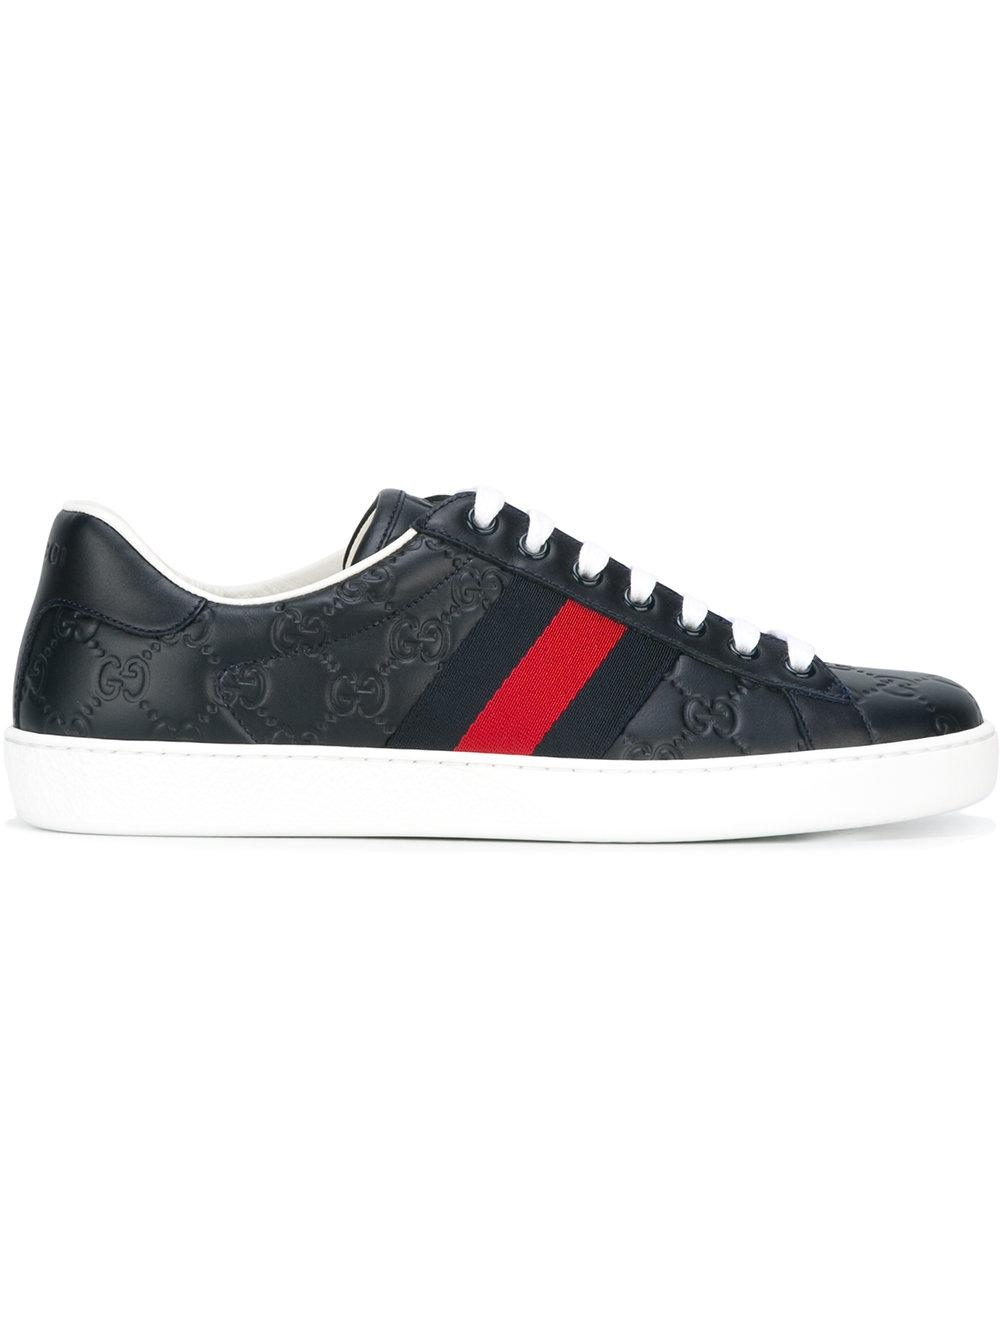 Gucci Ace Signature Sneakers In Blue For Men Lyst